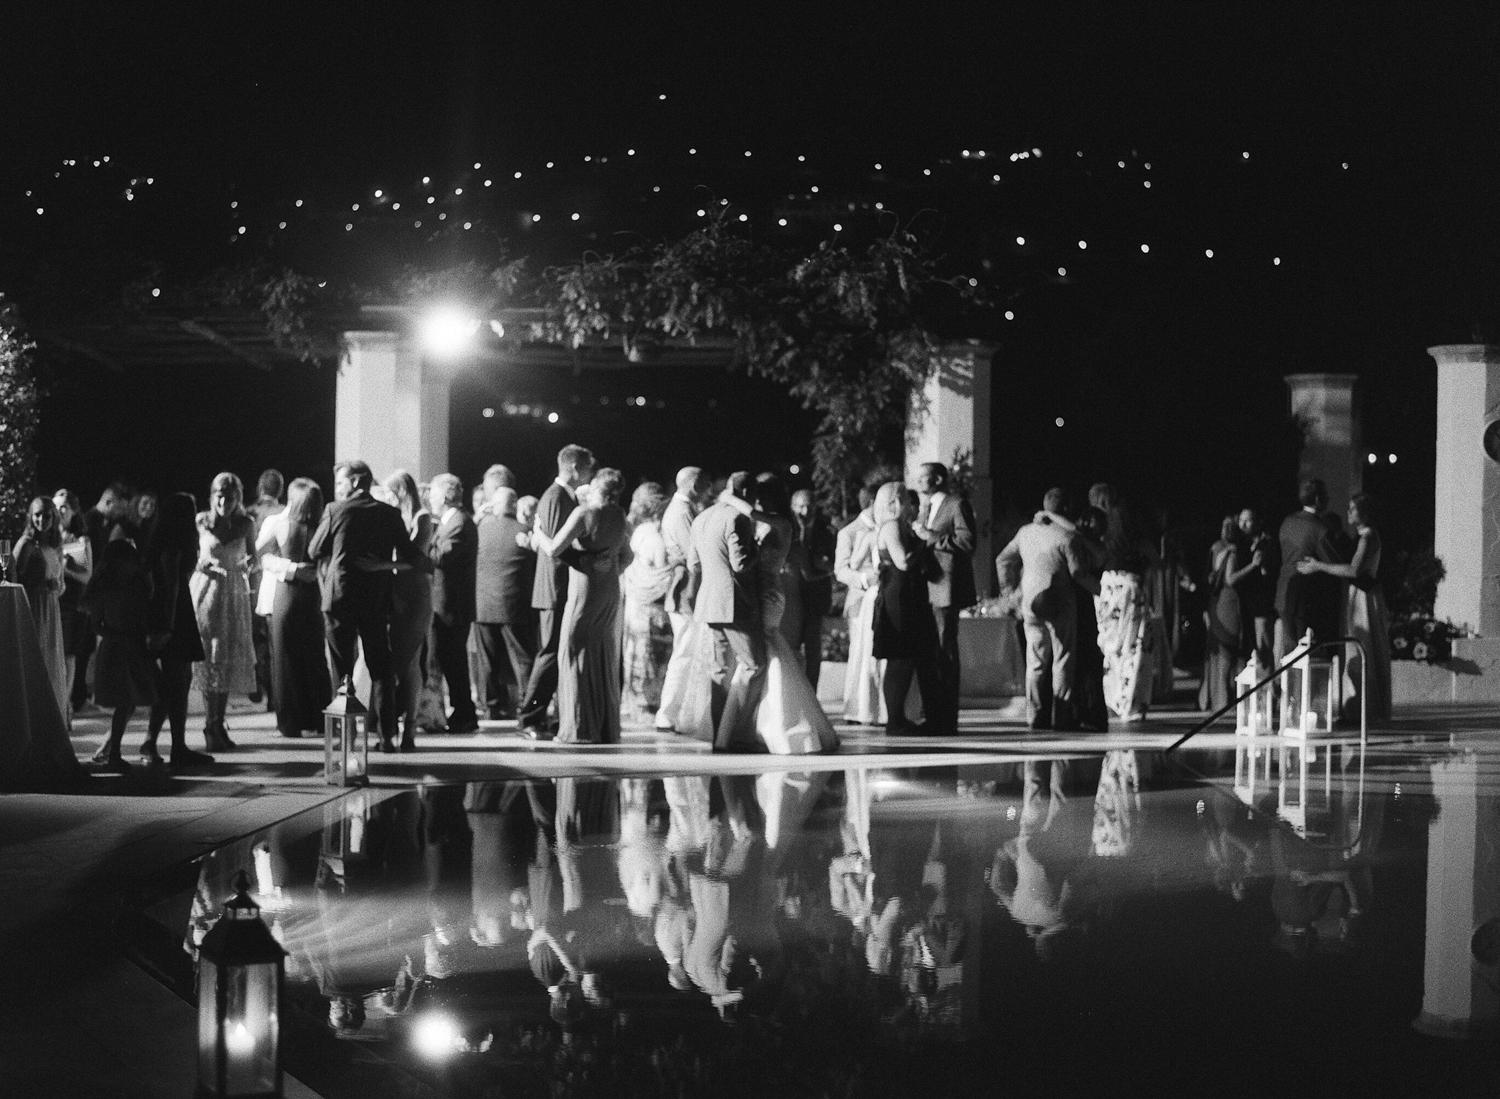 The wedding guests dance by the pool at night in Ravello, Italy; Sylvie Gil Photography